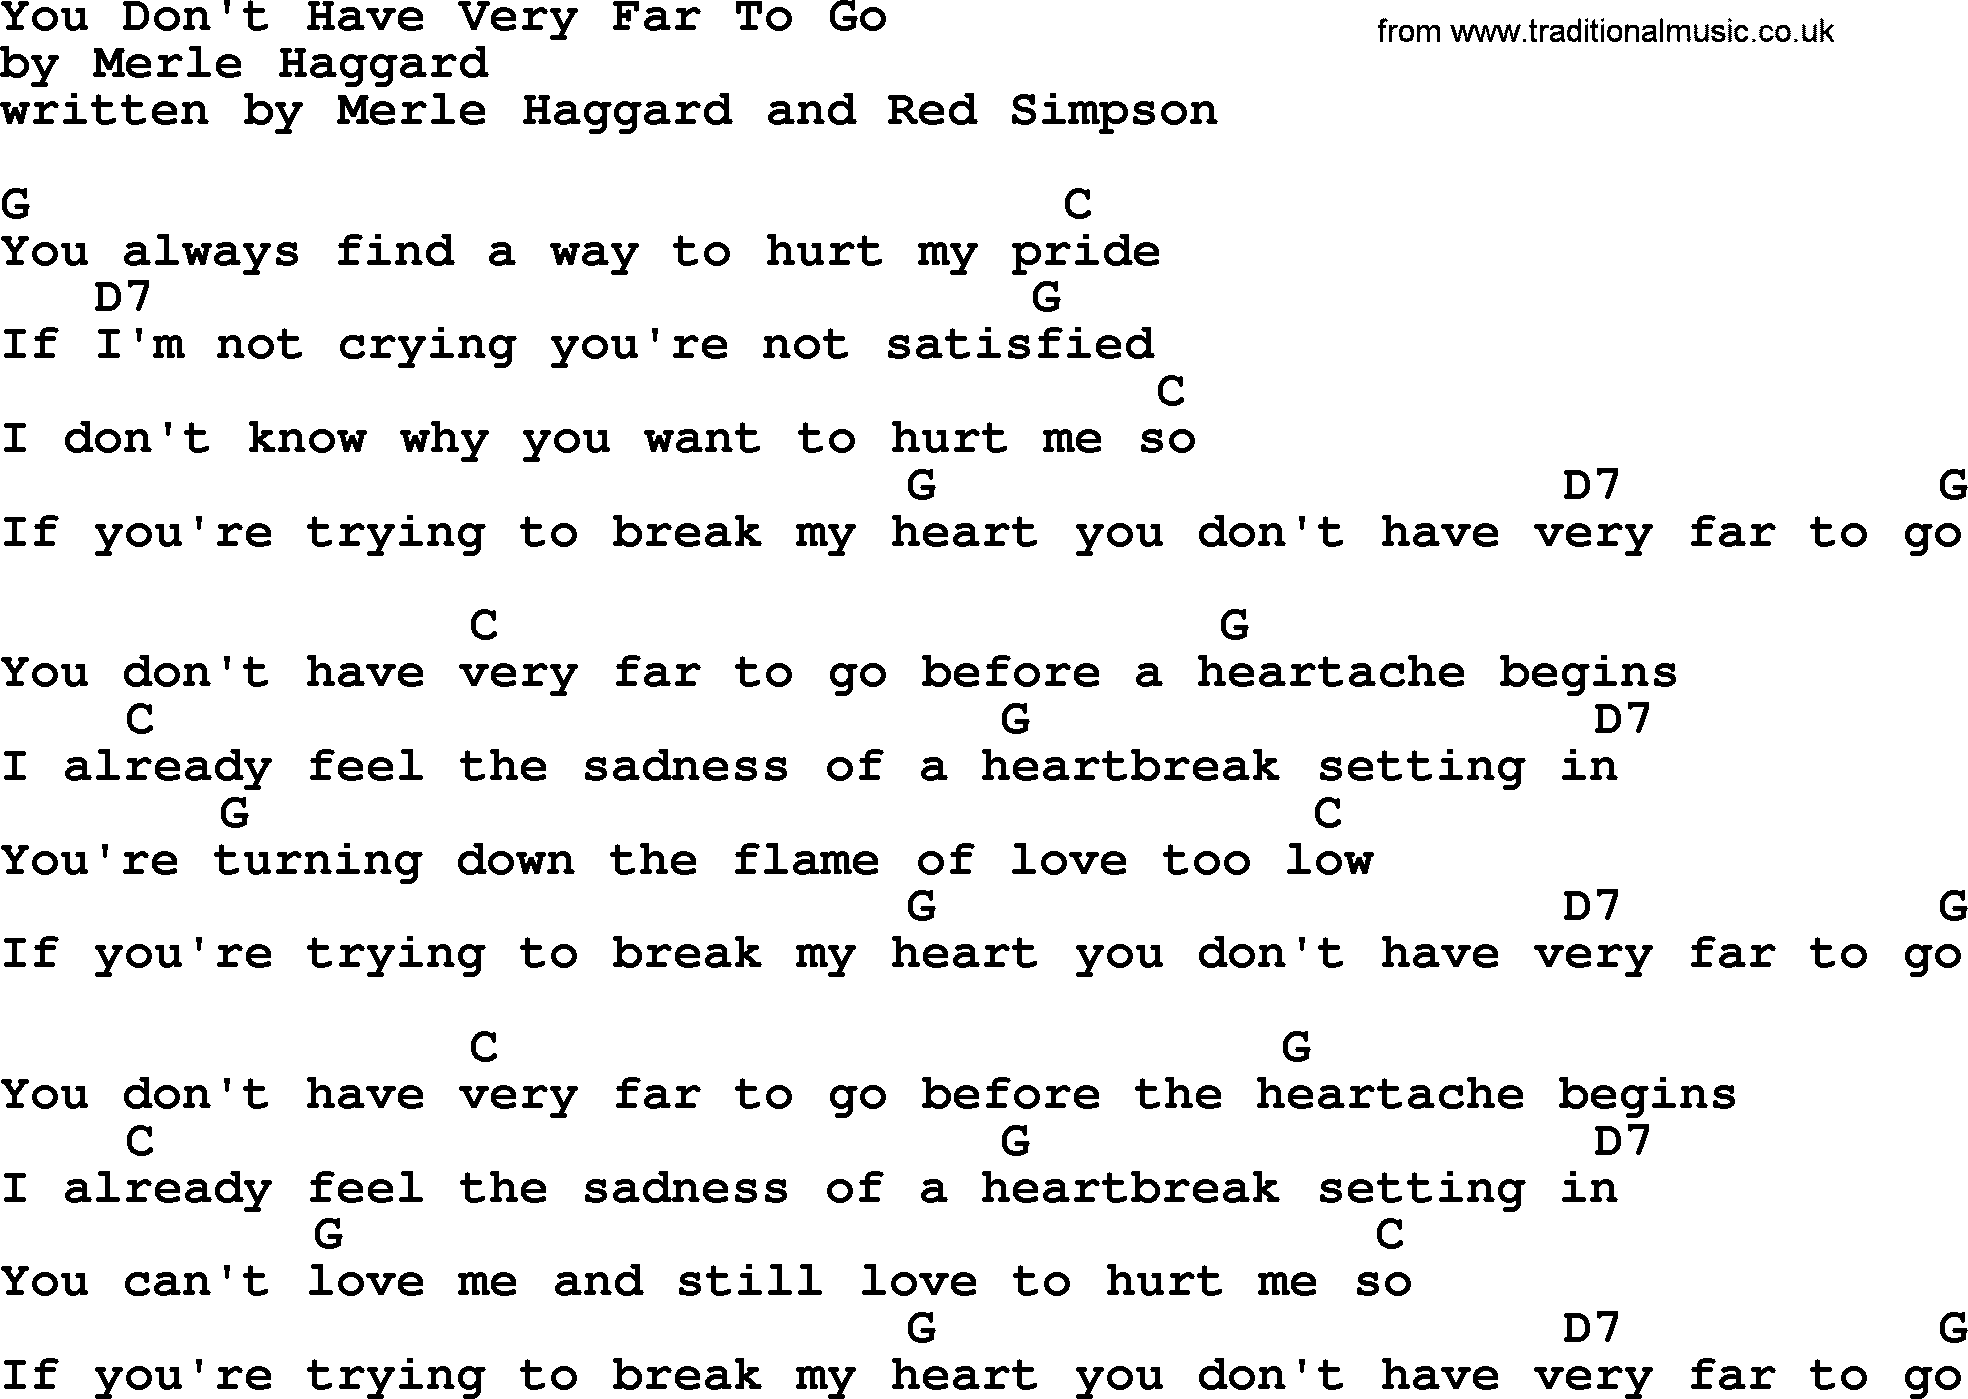 Merle Haggard Song You Dont Have Very Far To Go Lyrics And Chords